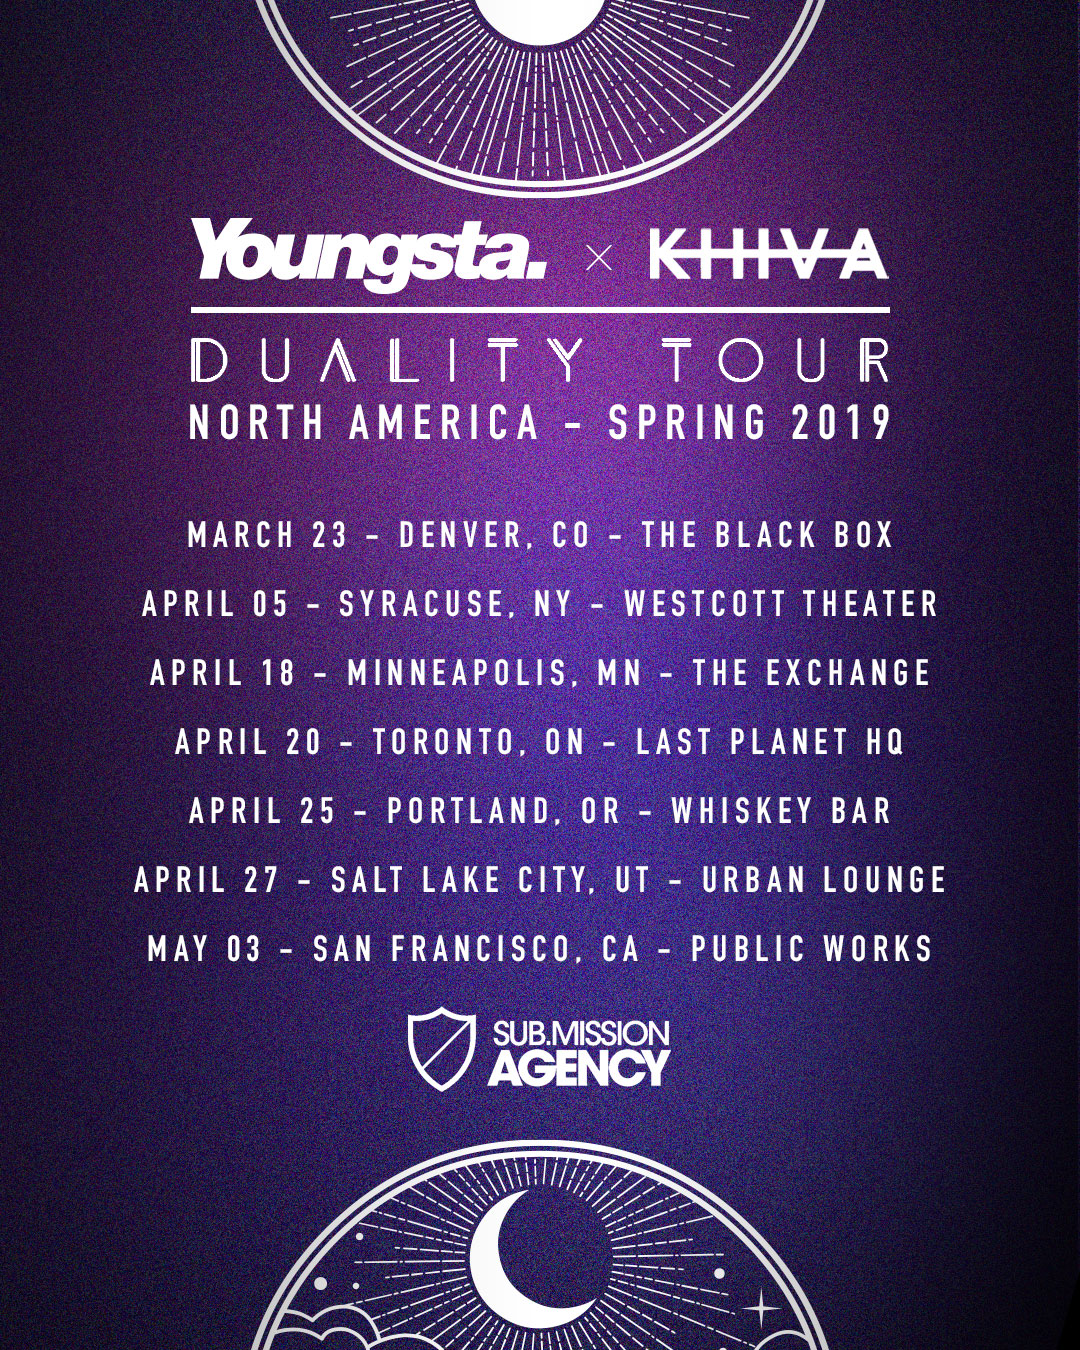 Youngsta x Khiva - Duality Tour